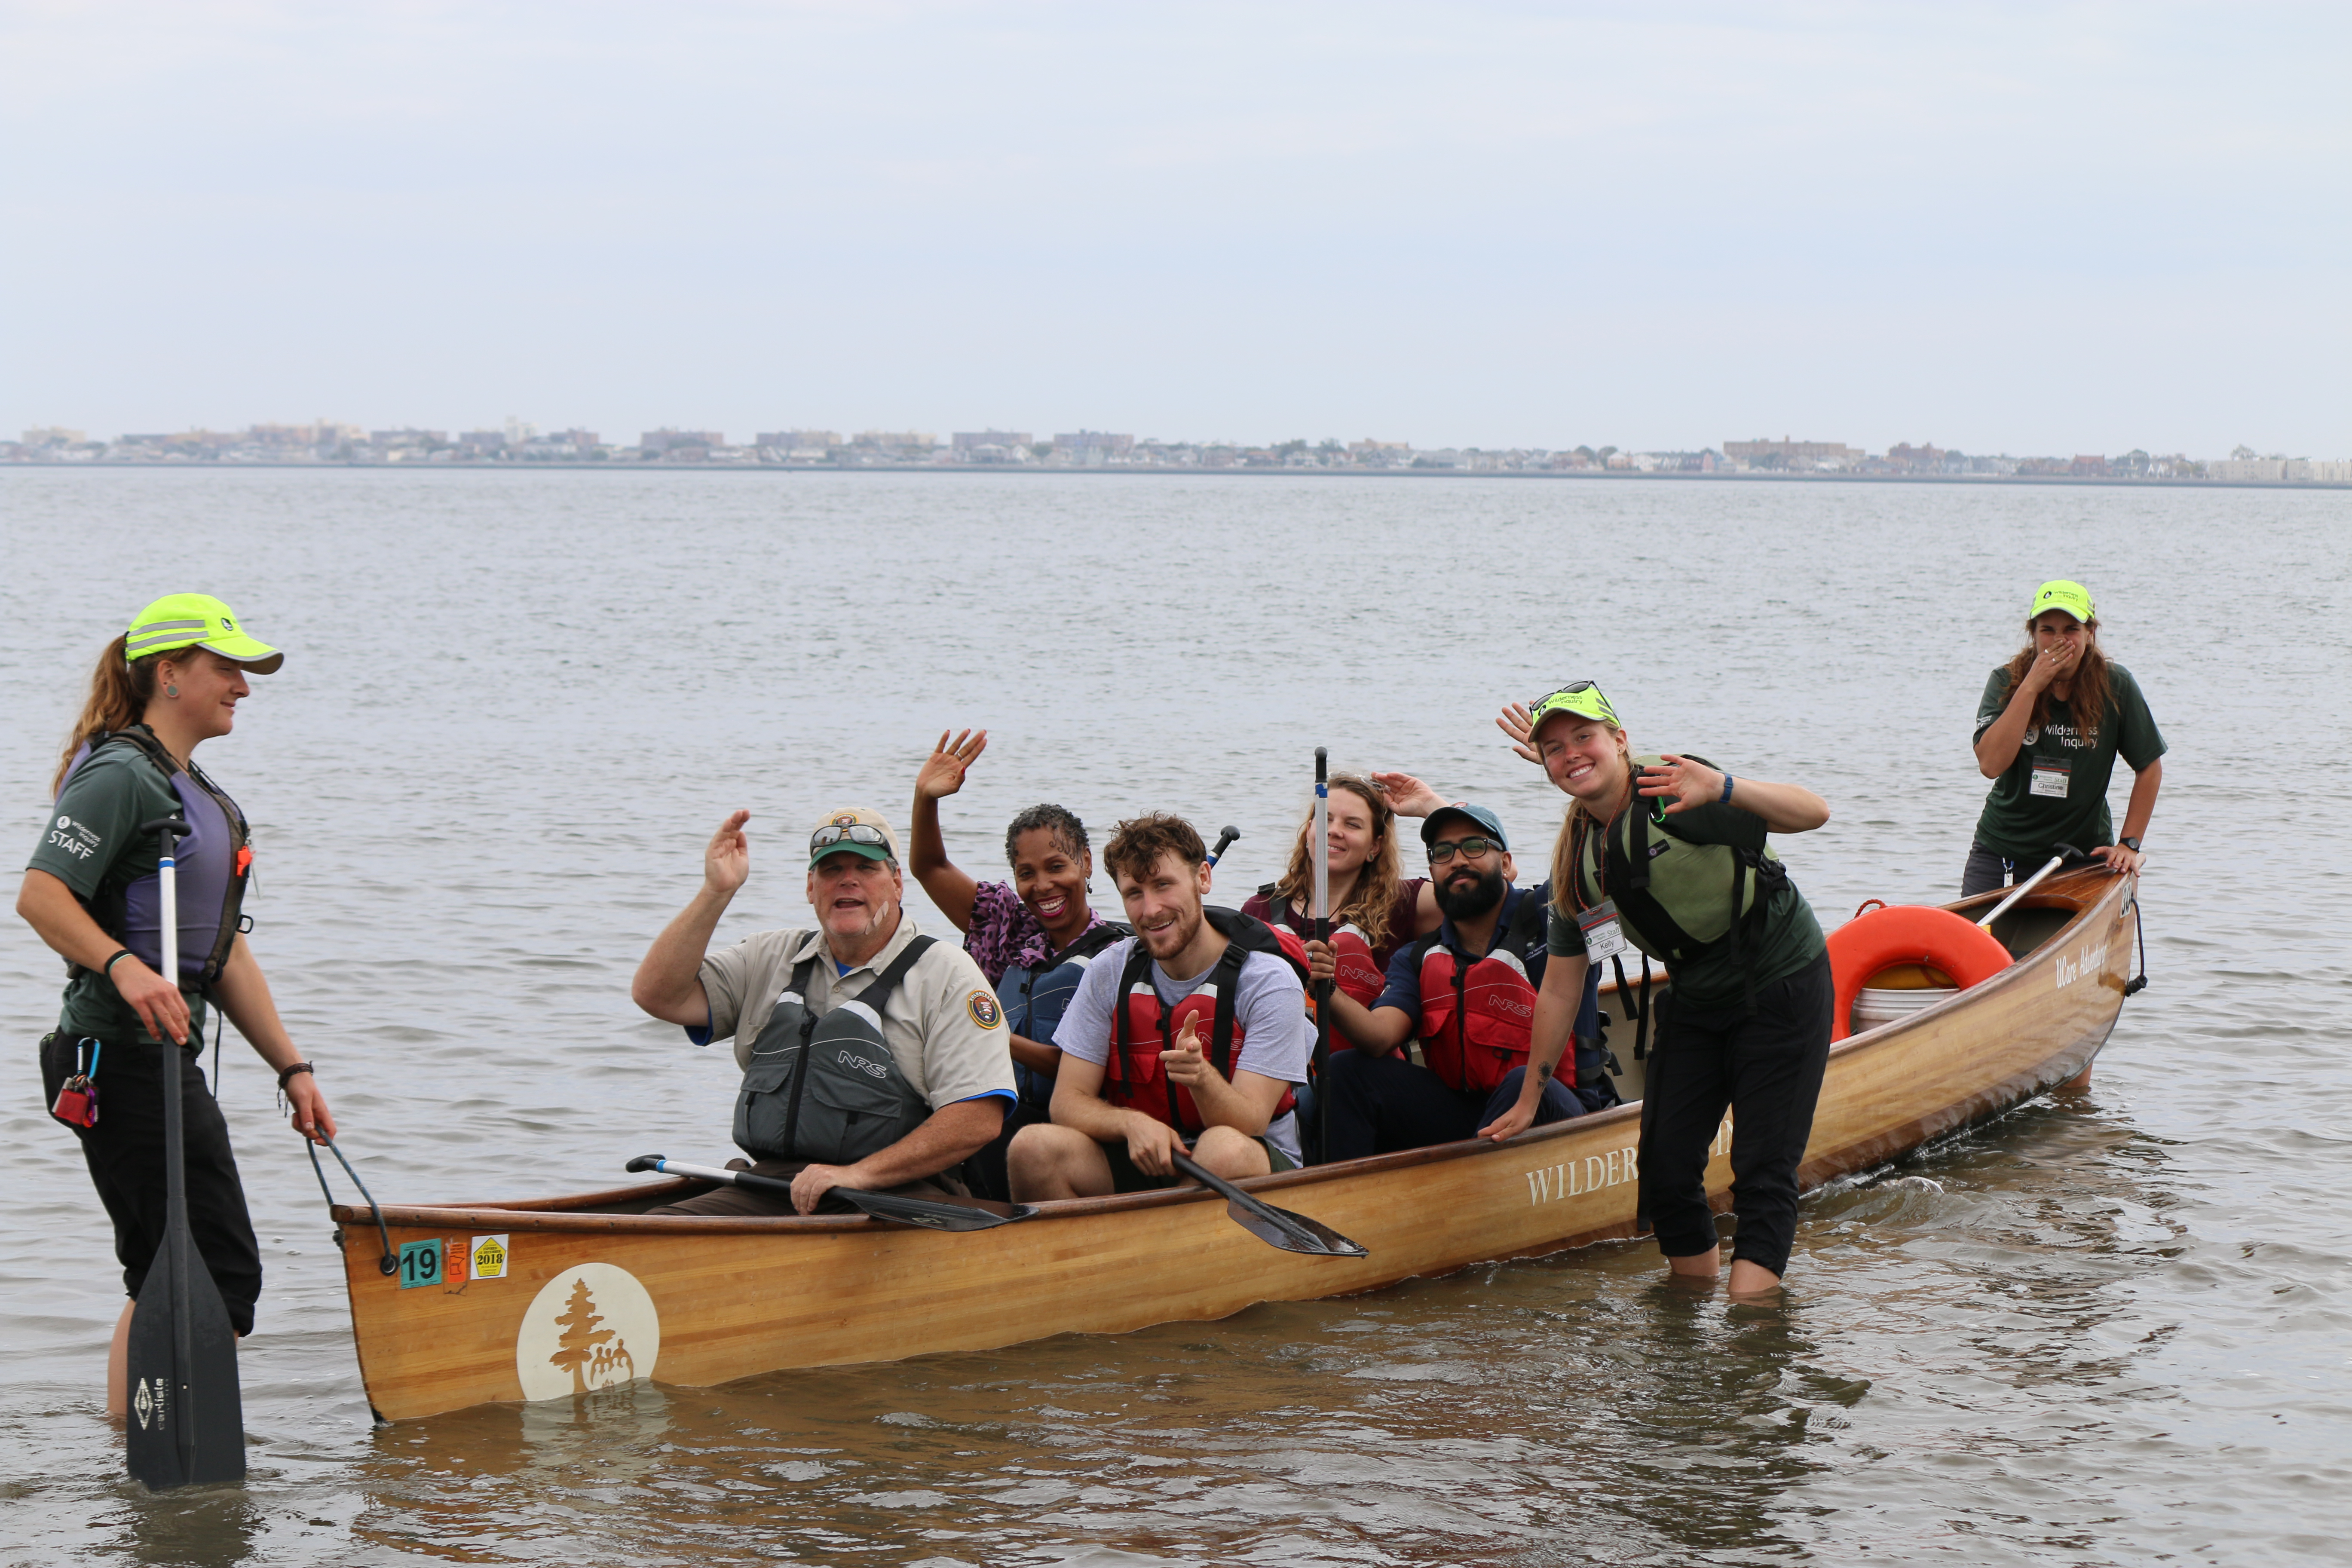 NPS Staff on Wilderness Inquiry 14 foot Voyager Canoe